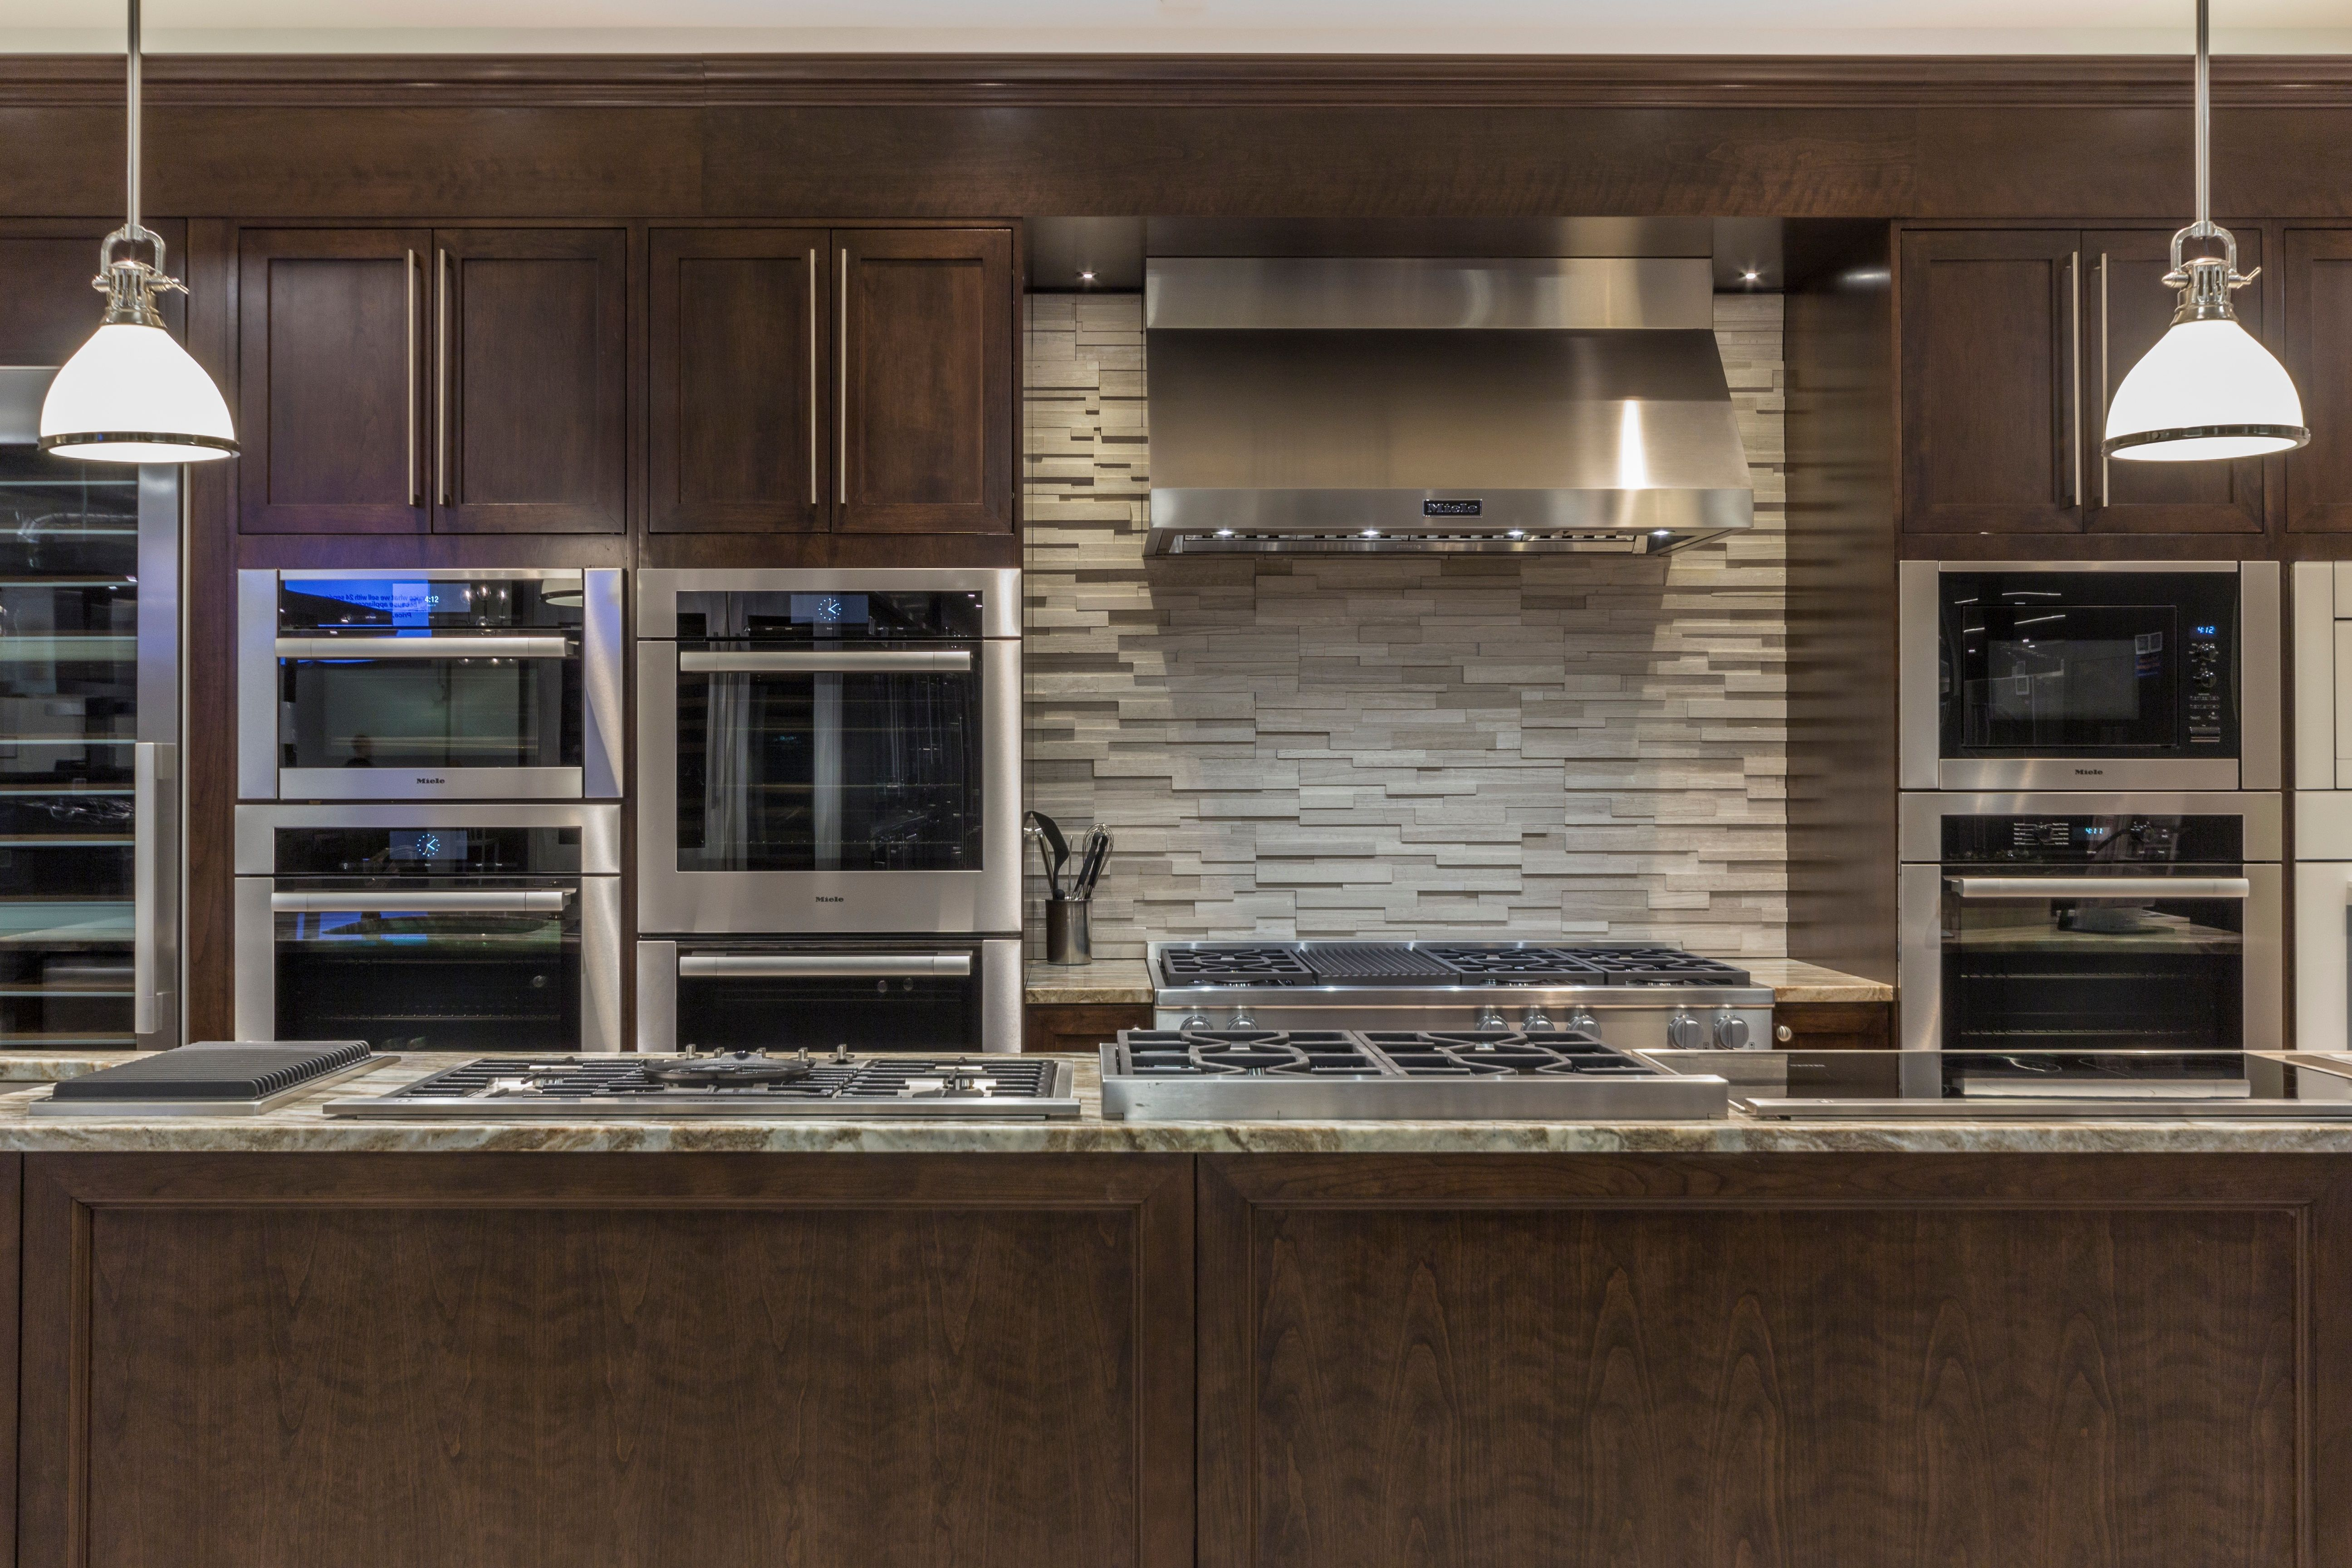 8 Best Luxury Appliance Brands for 8 (Reviews / Ratings